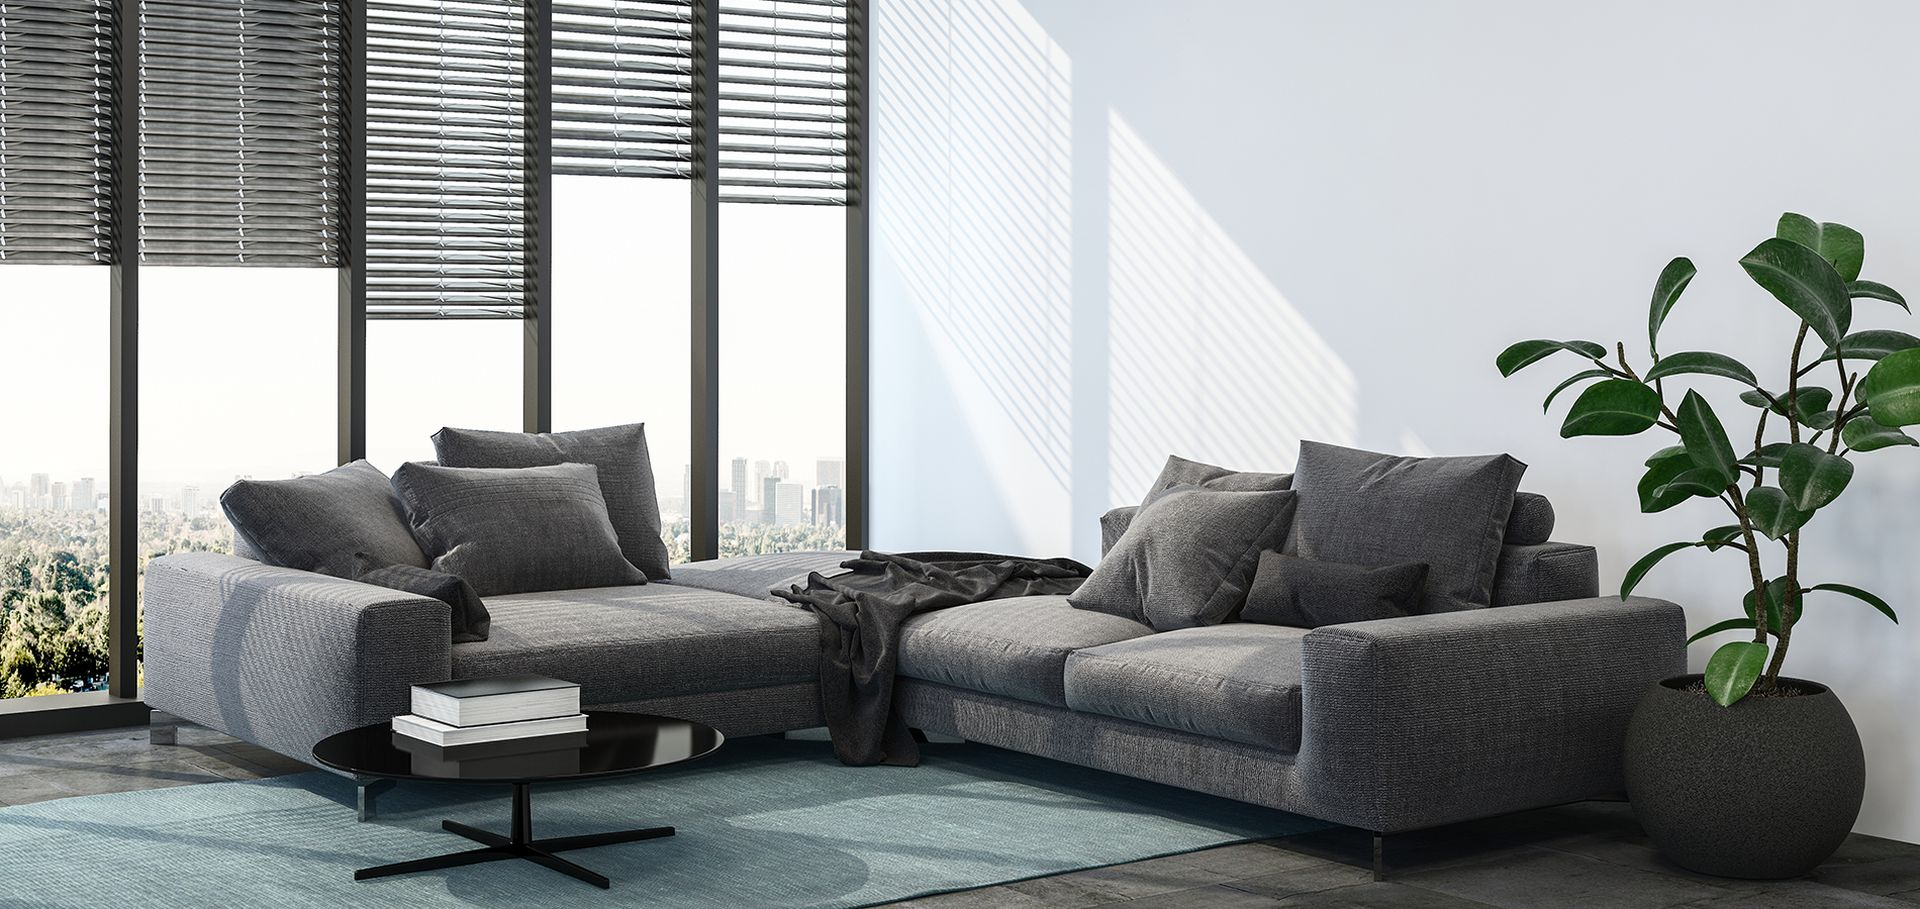 The Best Modern Window Treatments For Your Home Stoneside